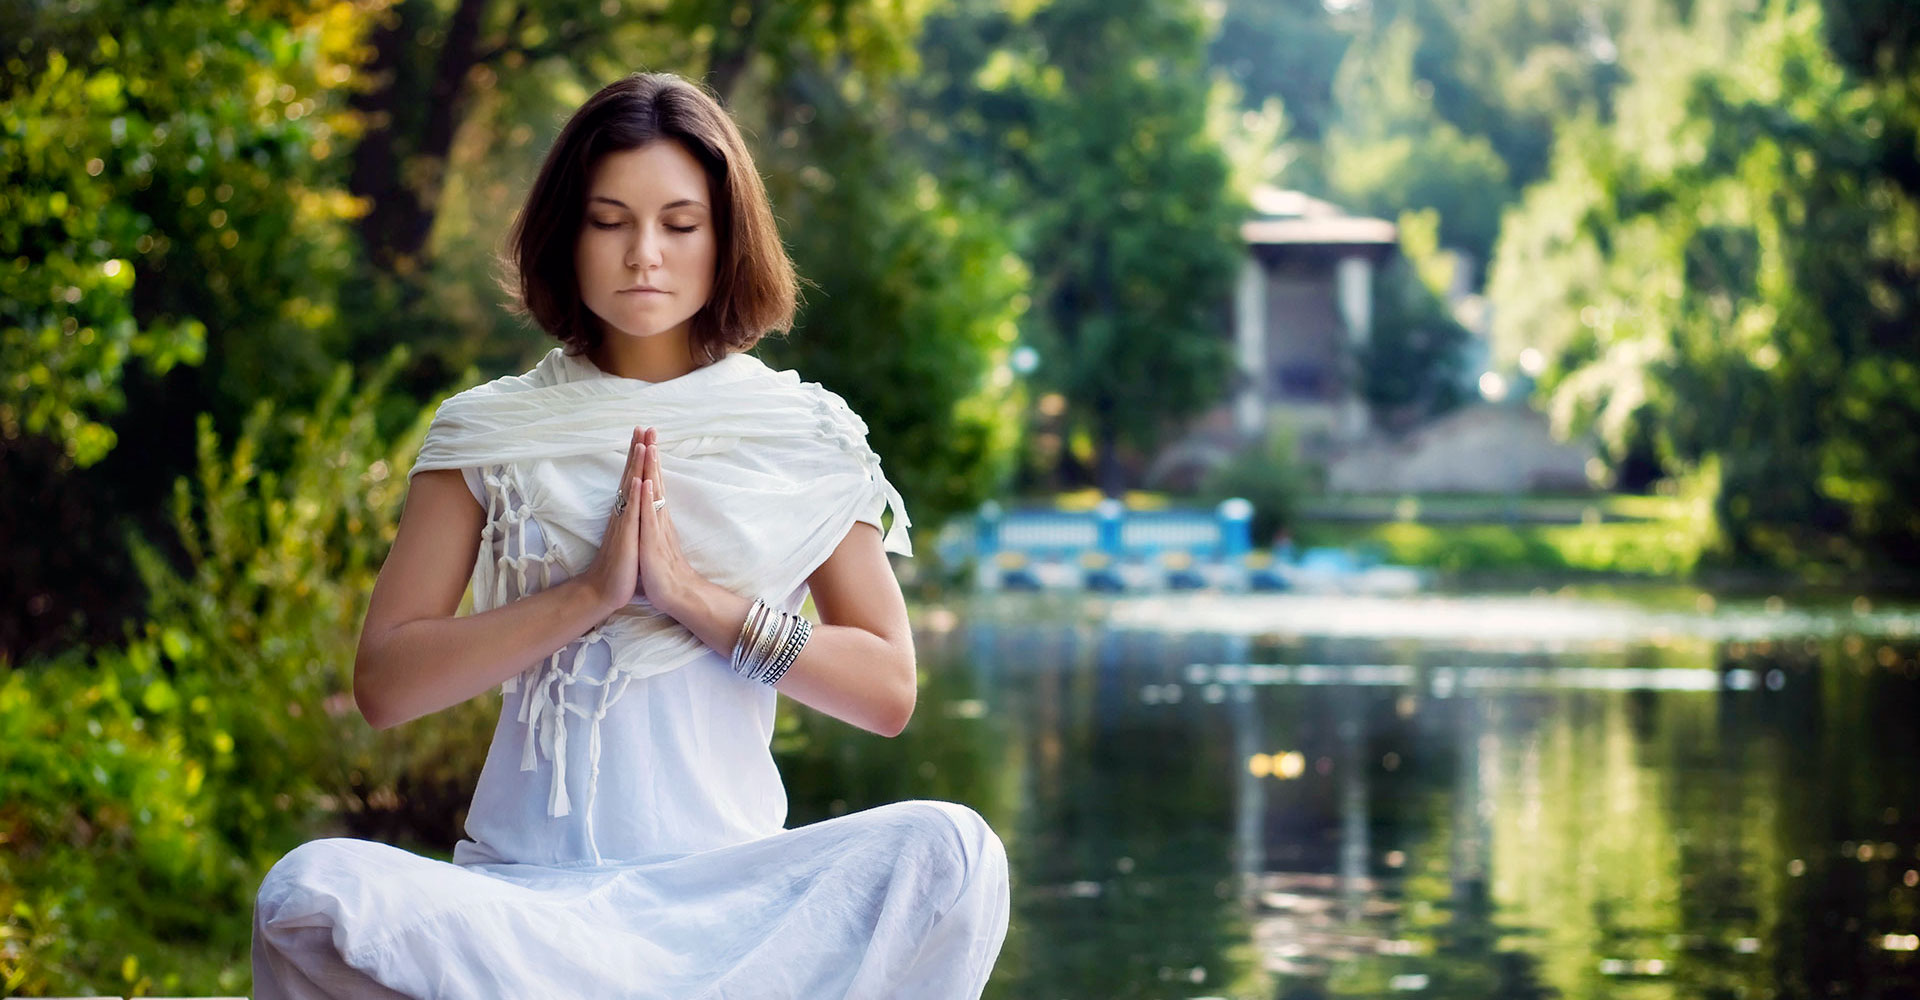 Session 4: Meditation and Relaxation